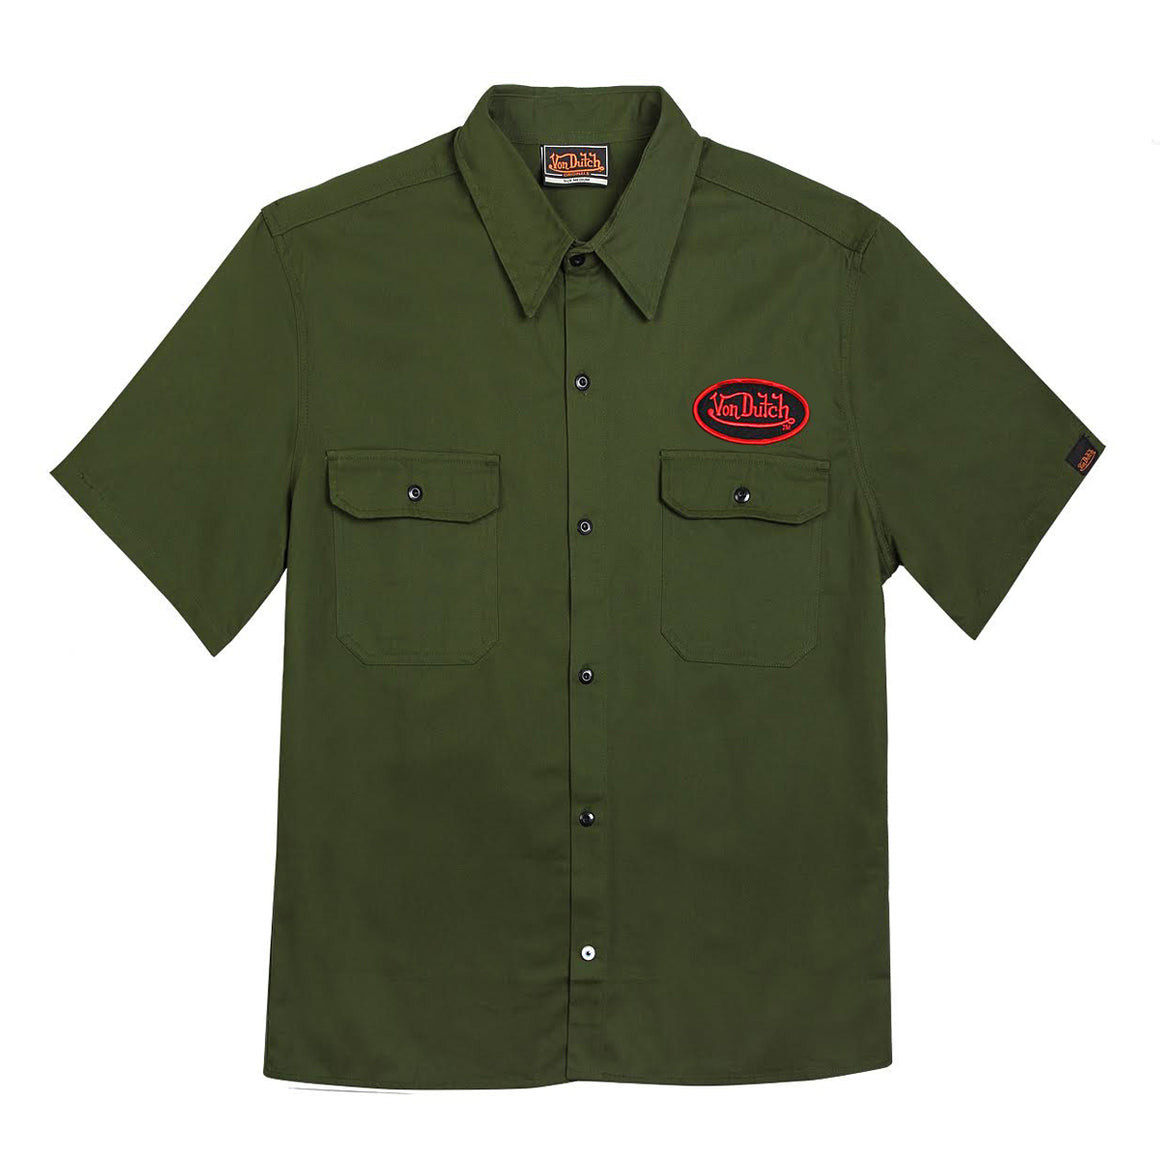 Von Dutch Army Green Mechanic Tee